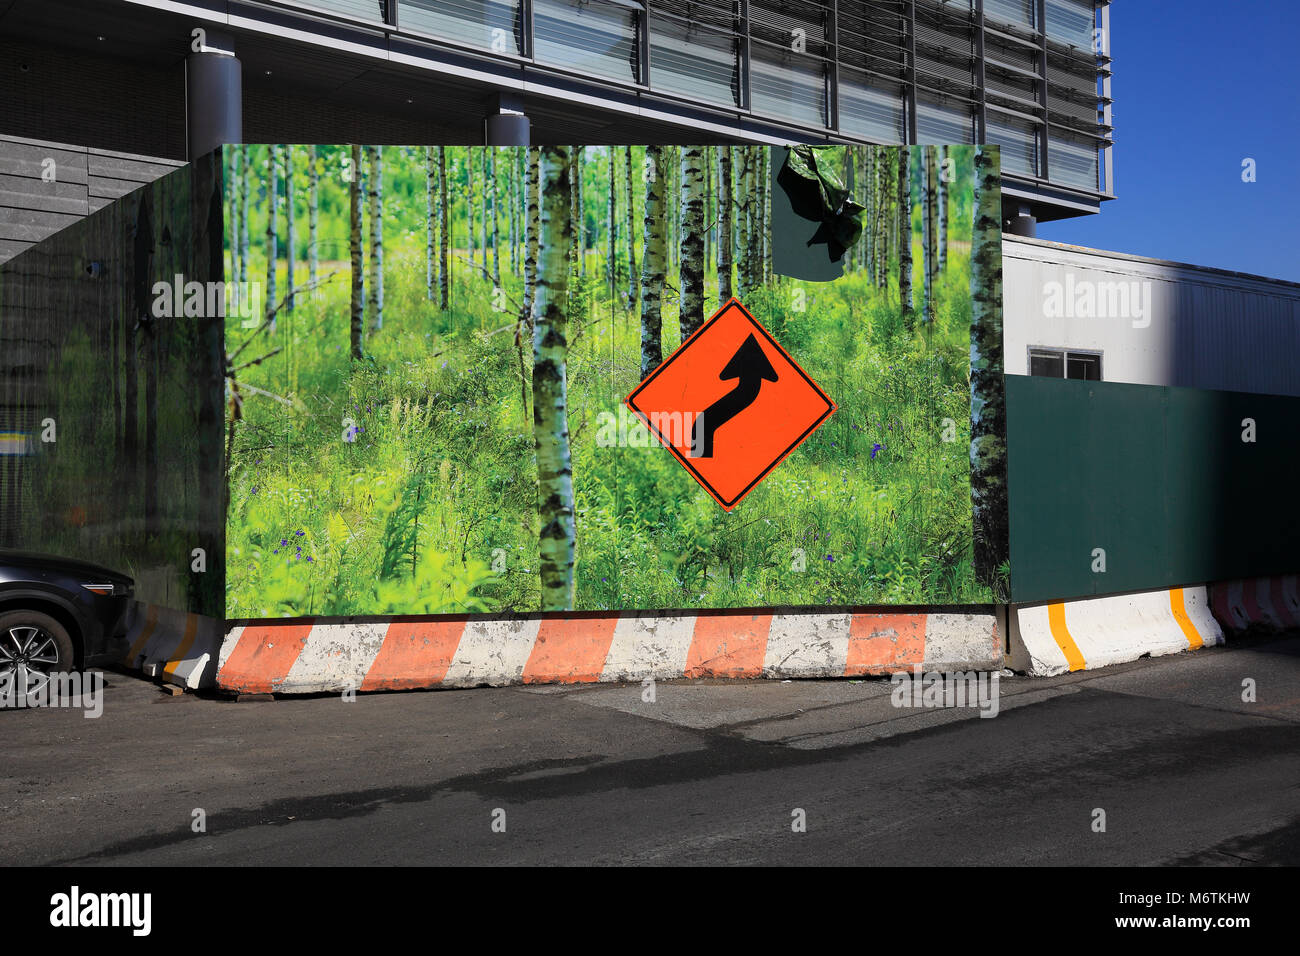 Deviation warning traffic sign on fenced-in construction site - Stock Image